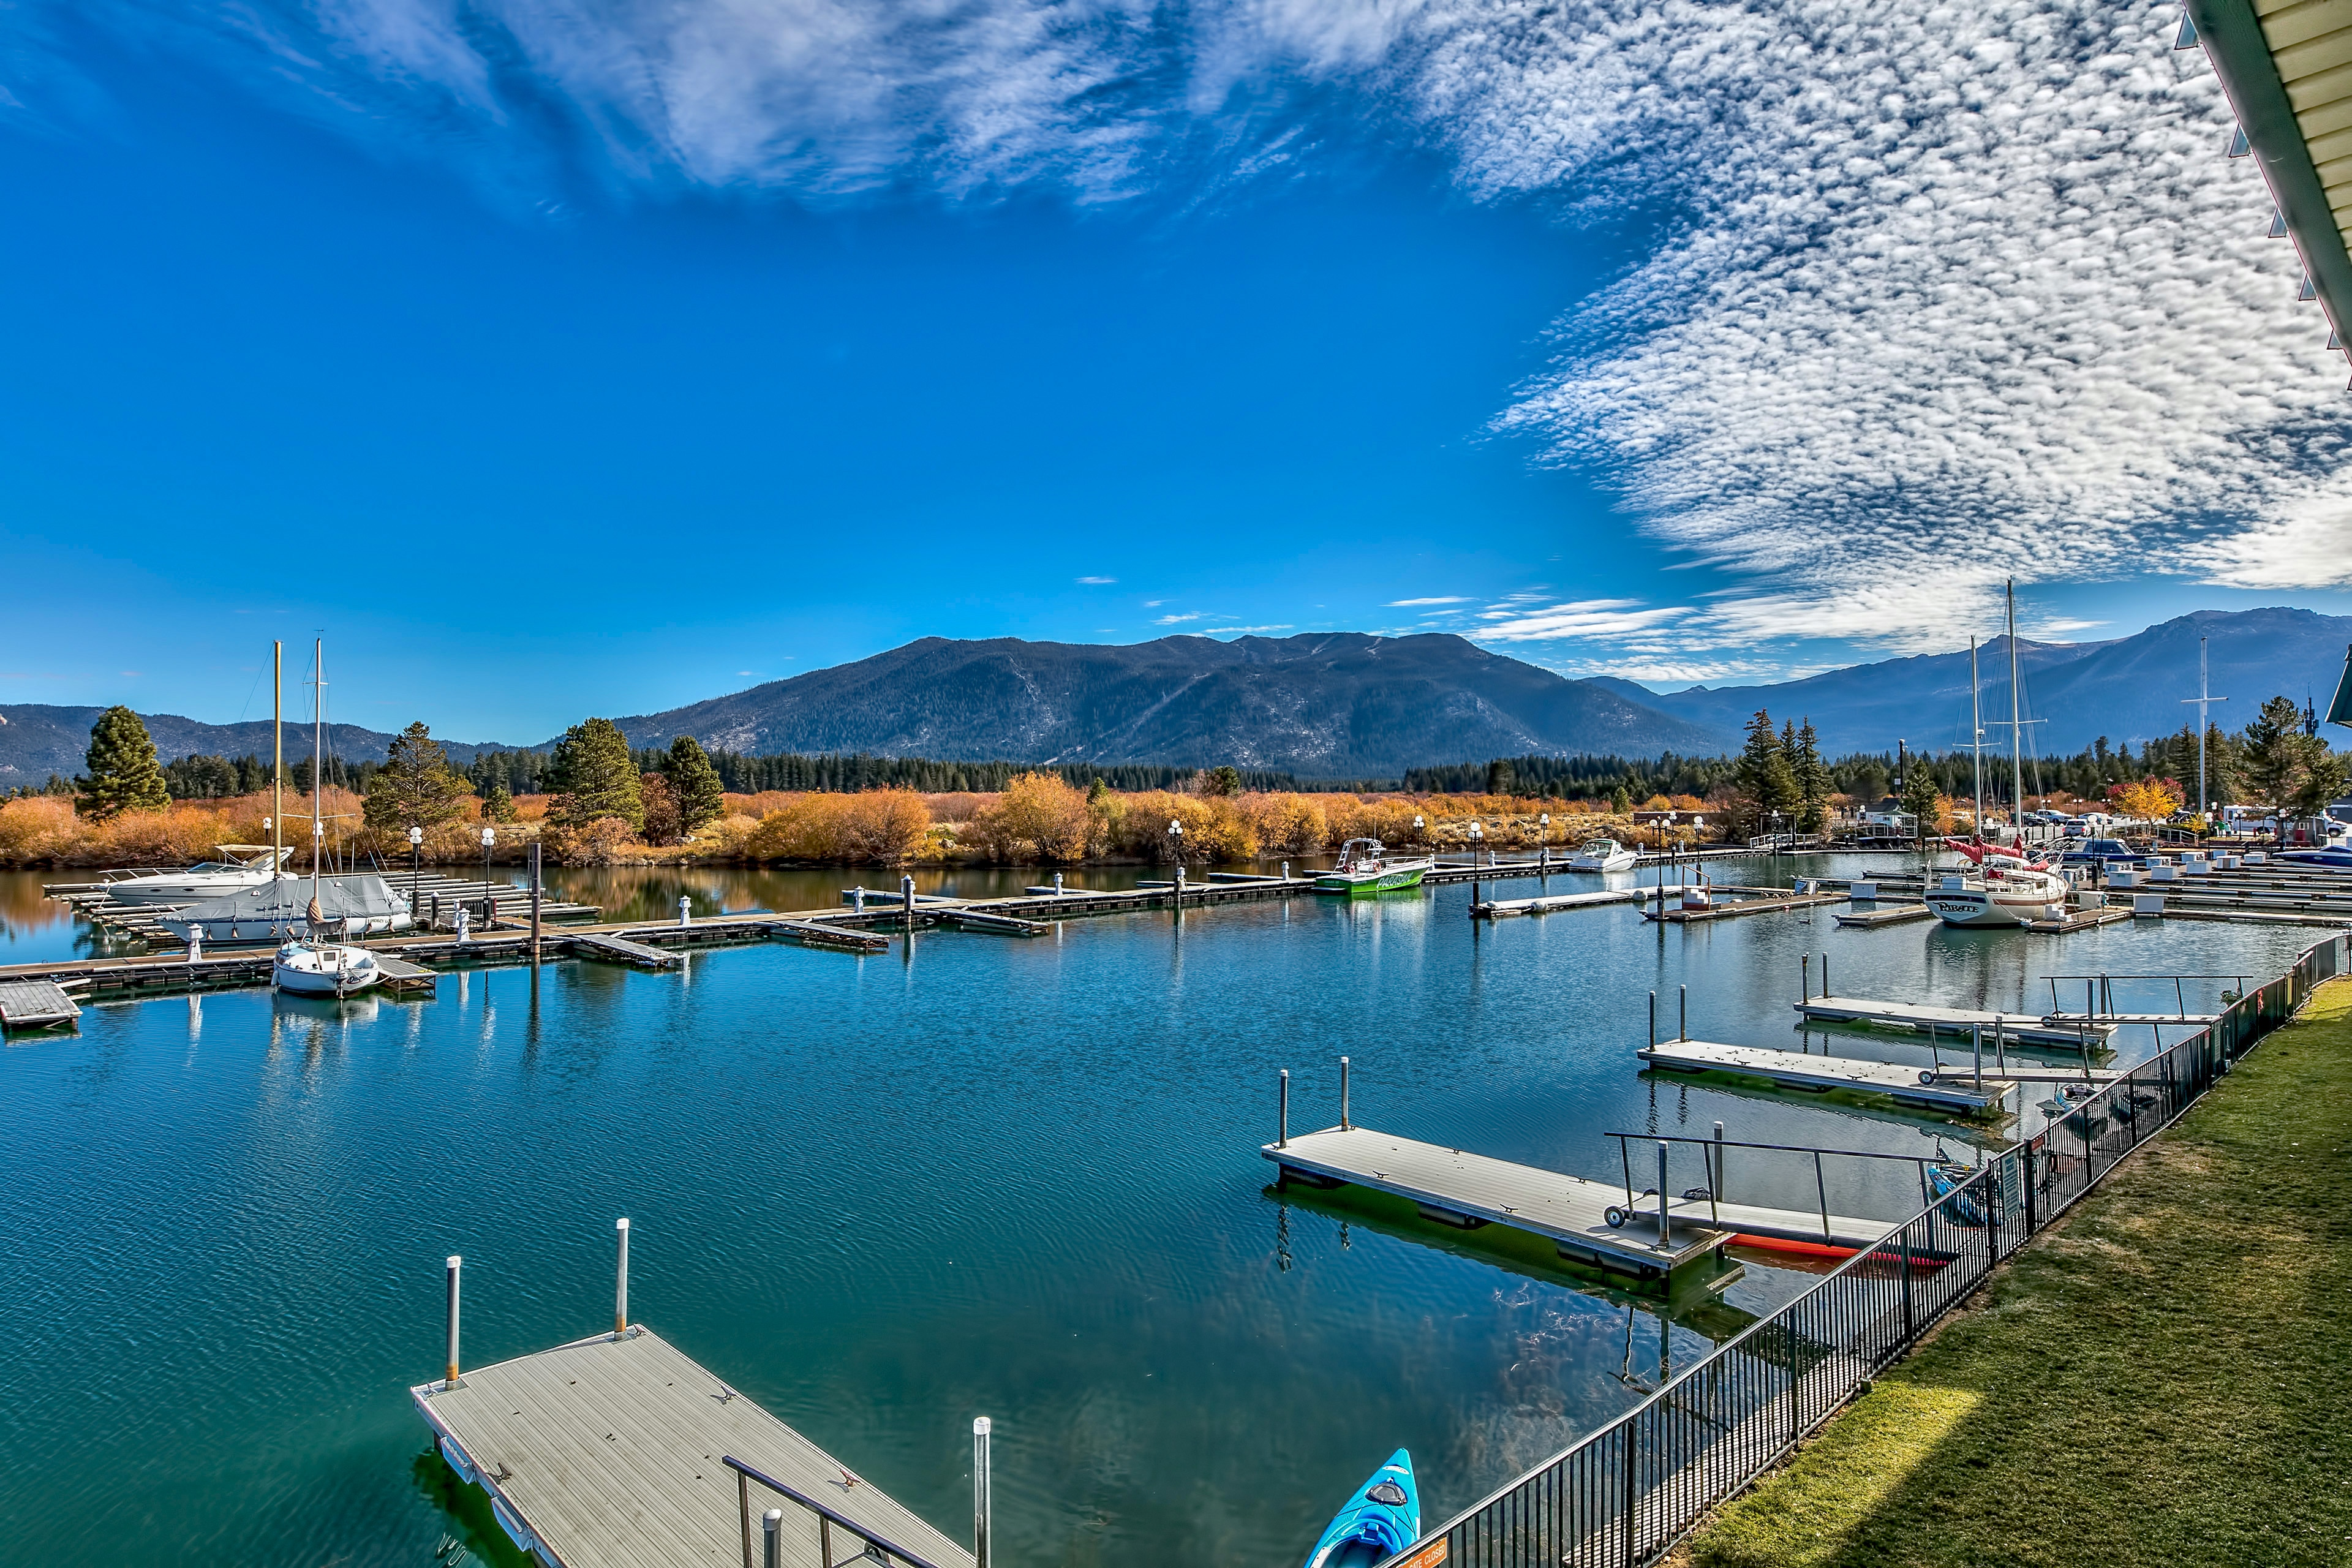 Apartment zum Verkauf in 439 Ala Wai Blvd. #129, South Lake Tahoe, Kalifornien ,96150